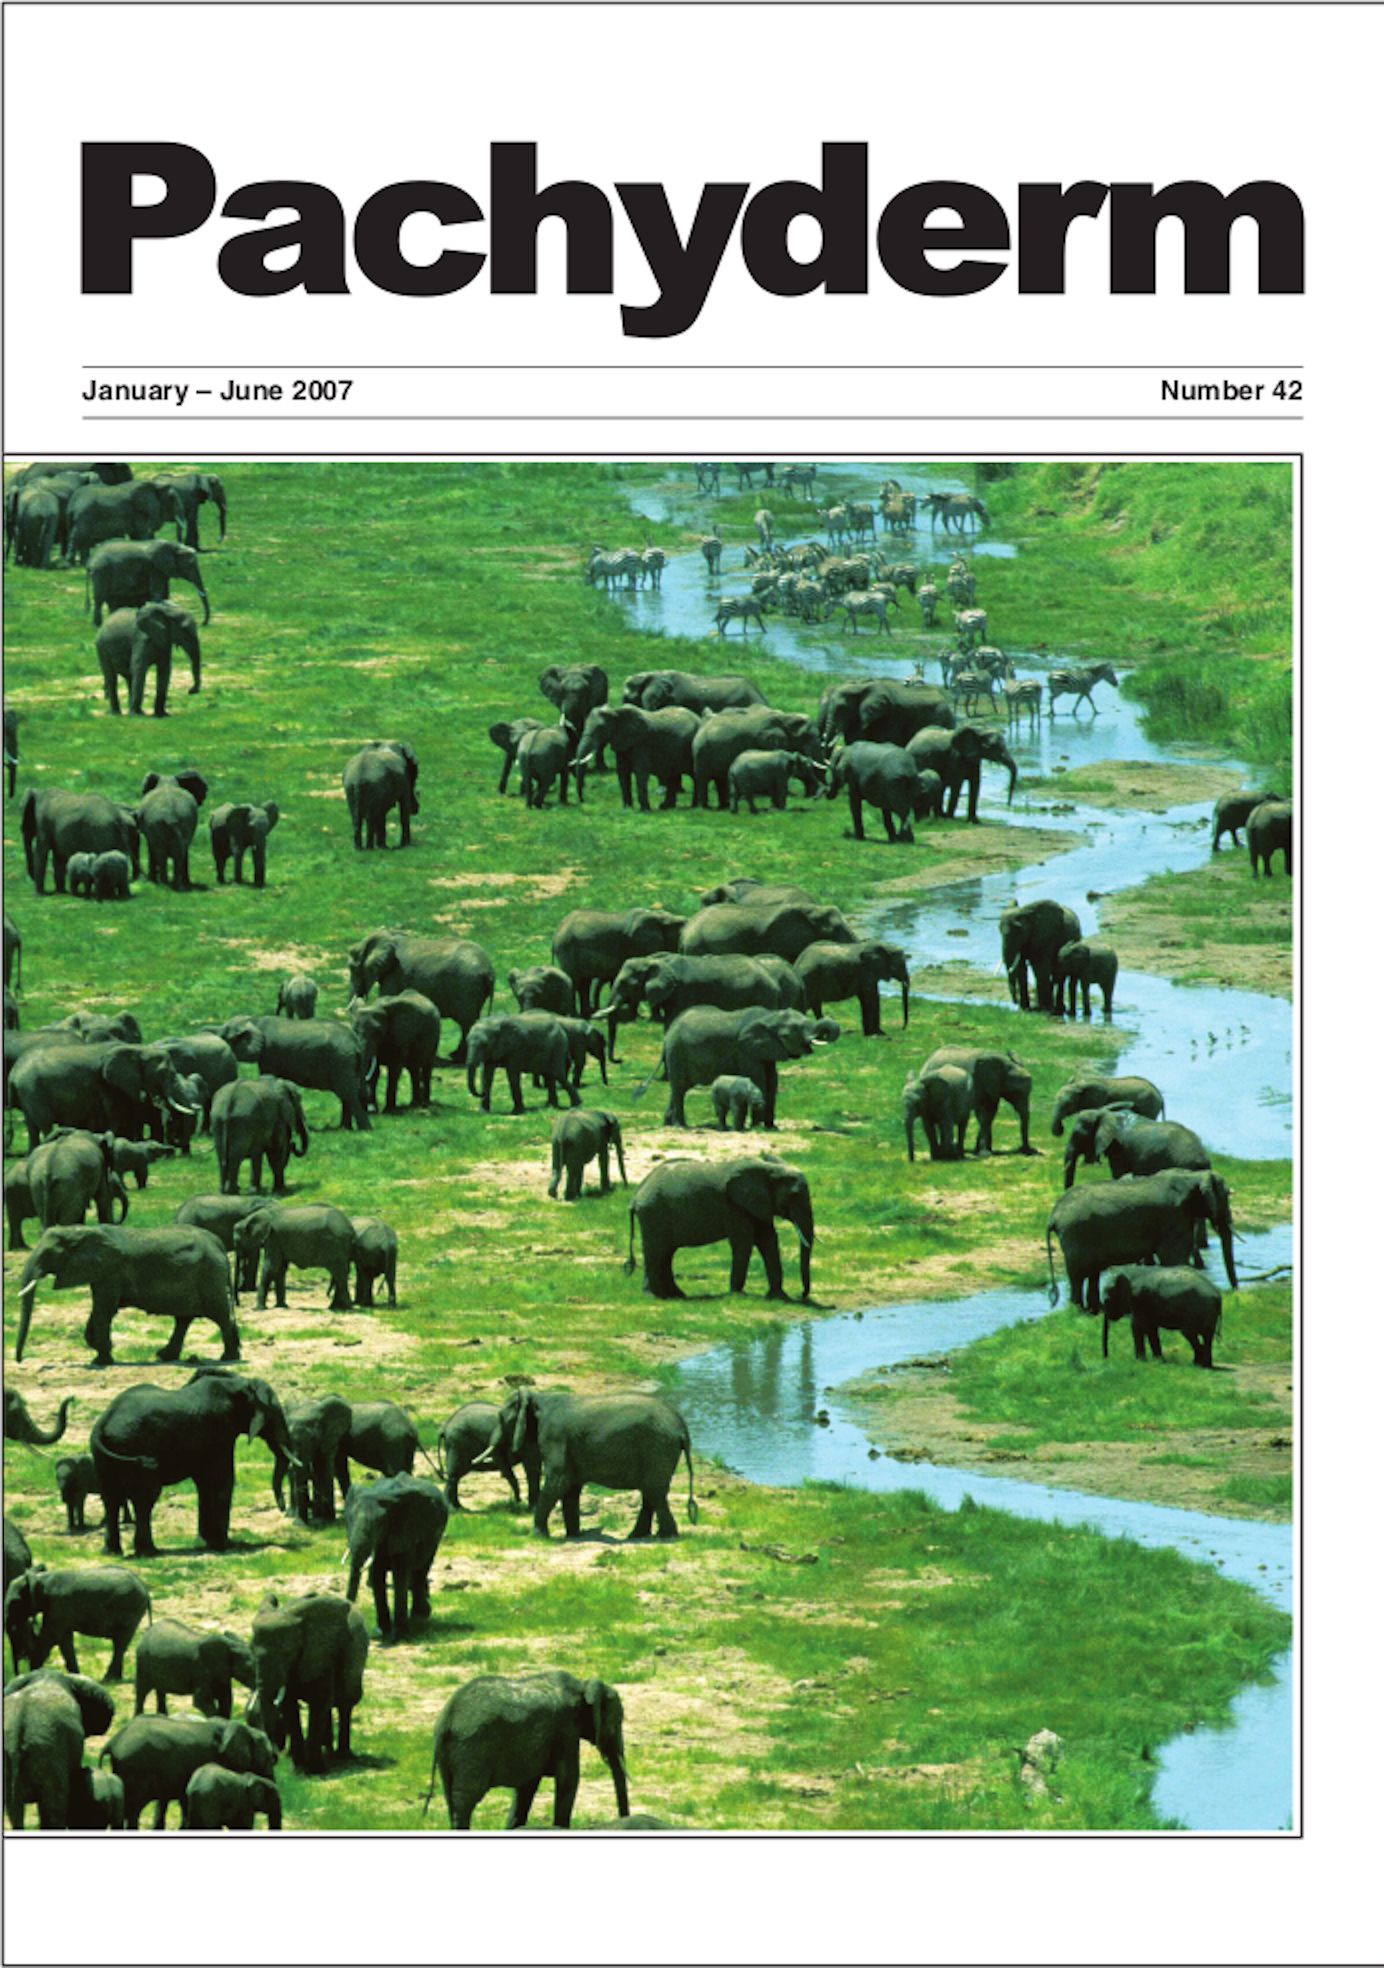 Cover: Elephants in Tarangire National Park, Tanzania. Photo: Charles and Lara Foley